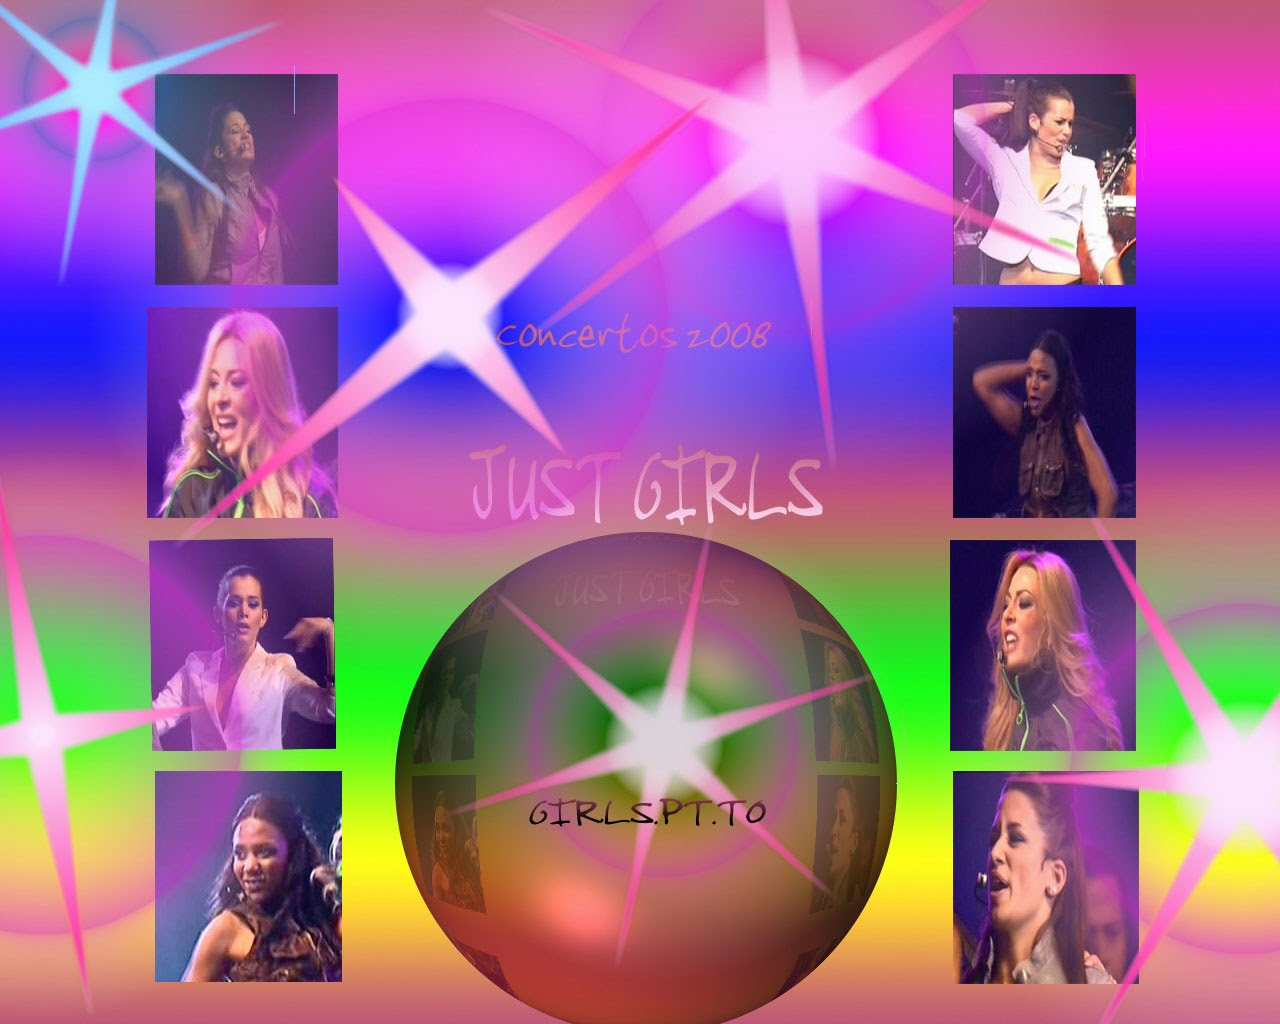 Just Girls concertos